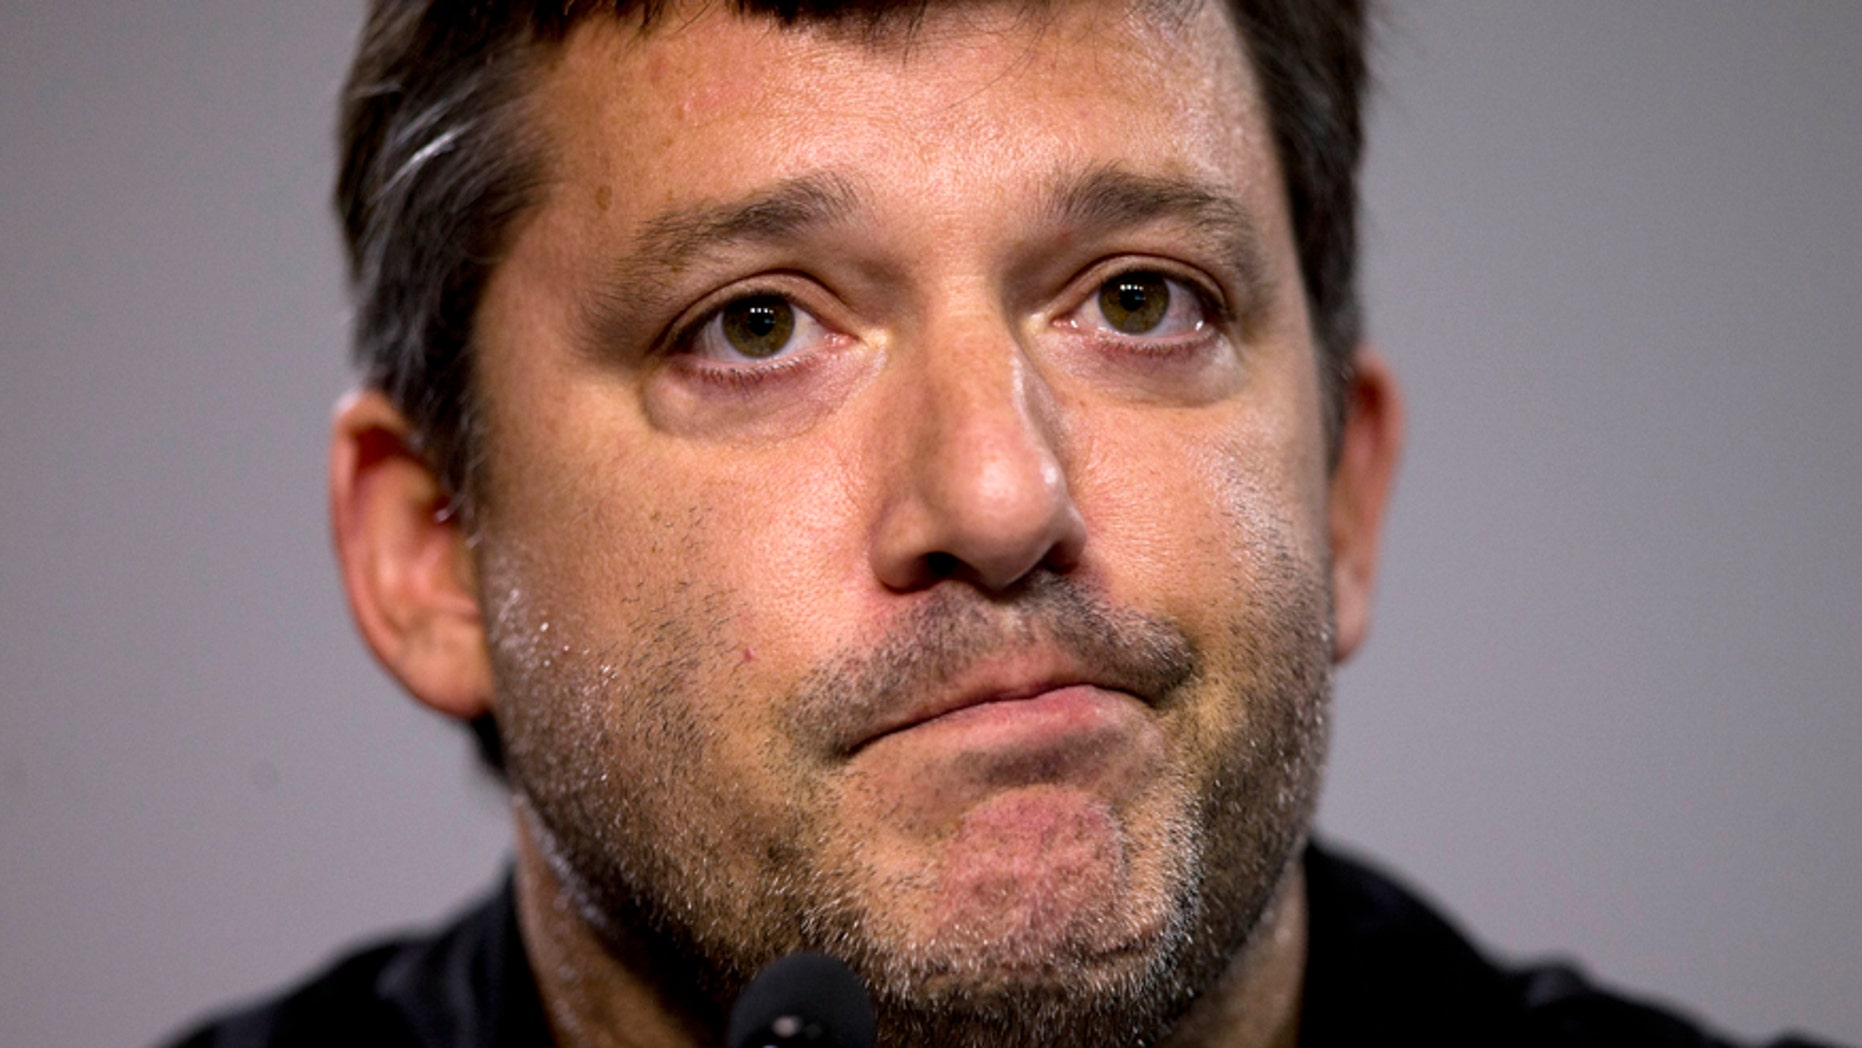 FILE - In this Aug. 29, 2014, file photo, NASCAR auto racing driver Tony Stewart reads a statement during a news conference at Atlanta Motor Speedway in Hampton, Ga. Stewart is scheduled to race Sunday at Watkins Glen International Raceway for the first time since 2012. He missed the 2013 race with a broken leg, then skipped the race last season following the accident in which his sprint car struck and killed Kevin Ward Jr. the night before the race. AP Photo/John Bazemore, File)